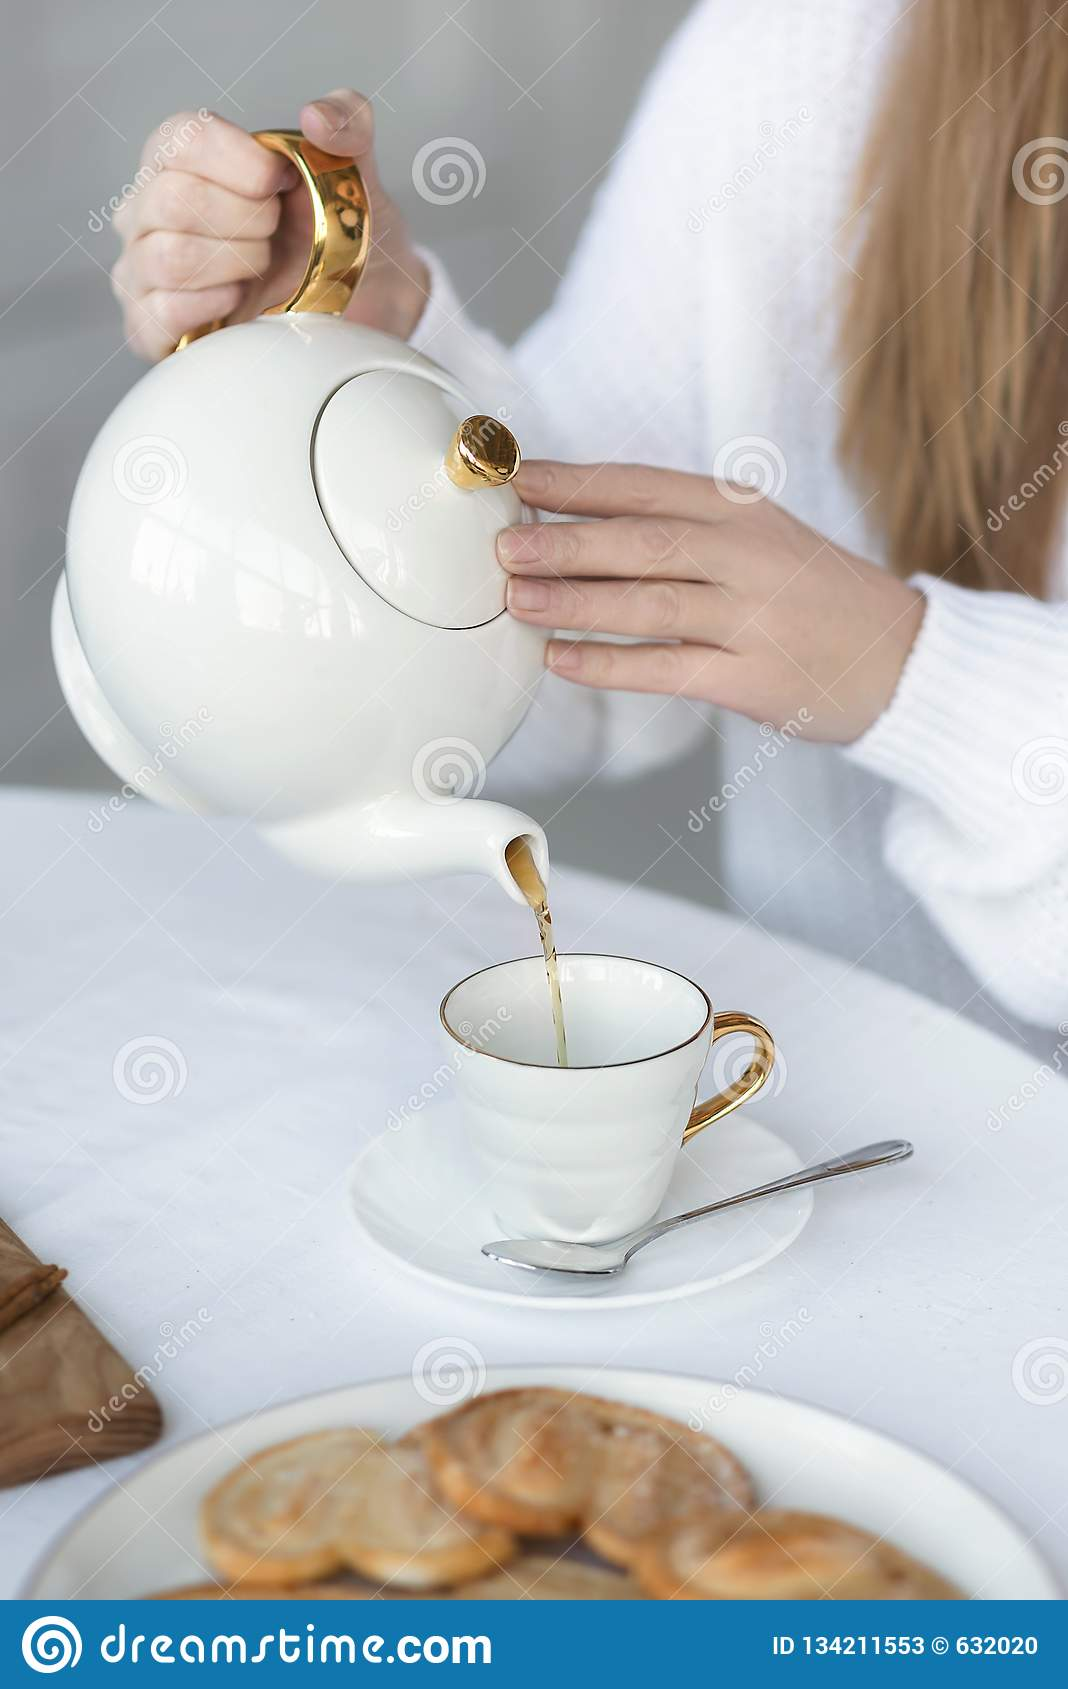 472 Female Hands Pouring Tea Cup Photos Free Royalty Free Stock Photos From Dreamstime